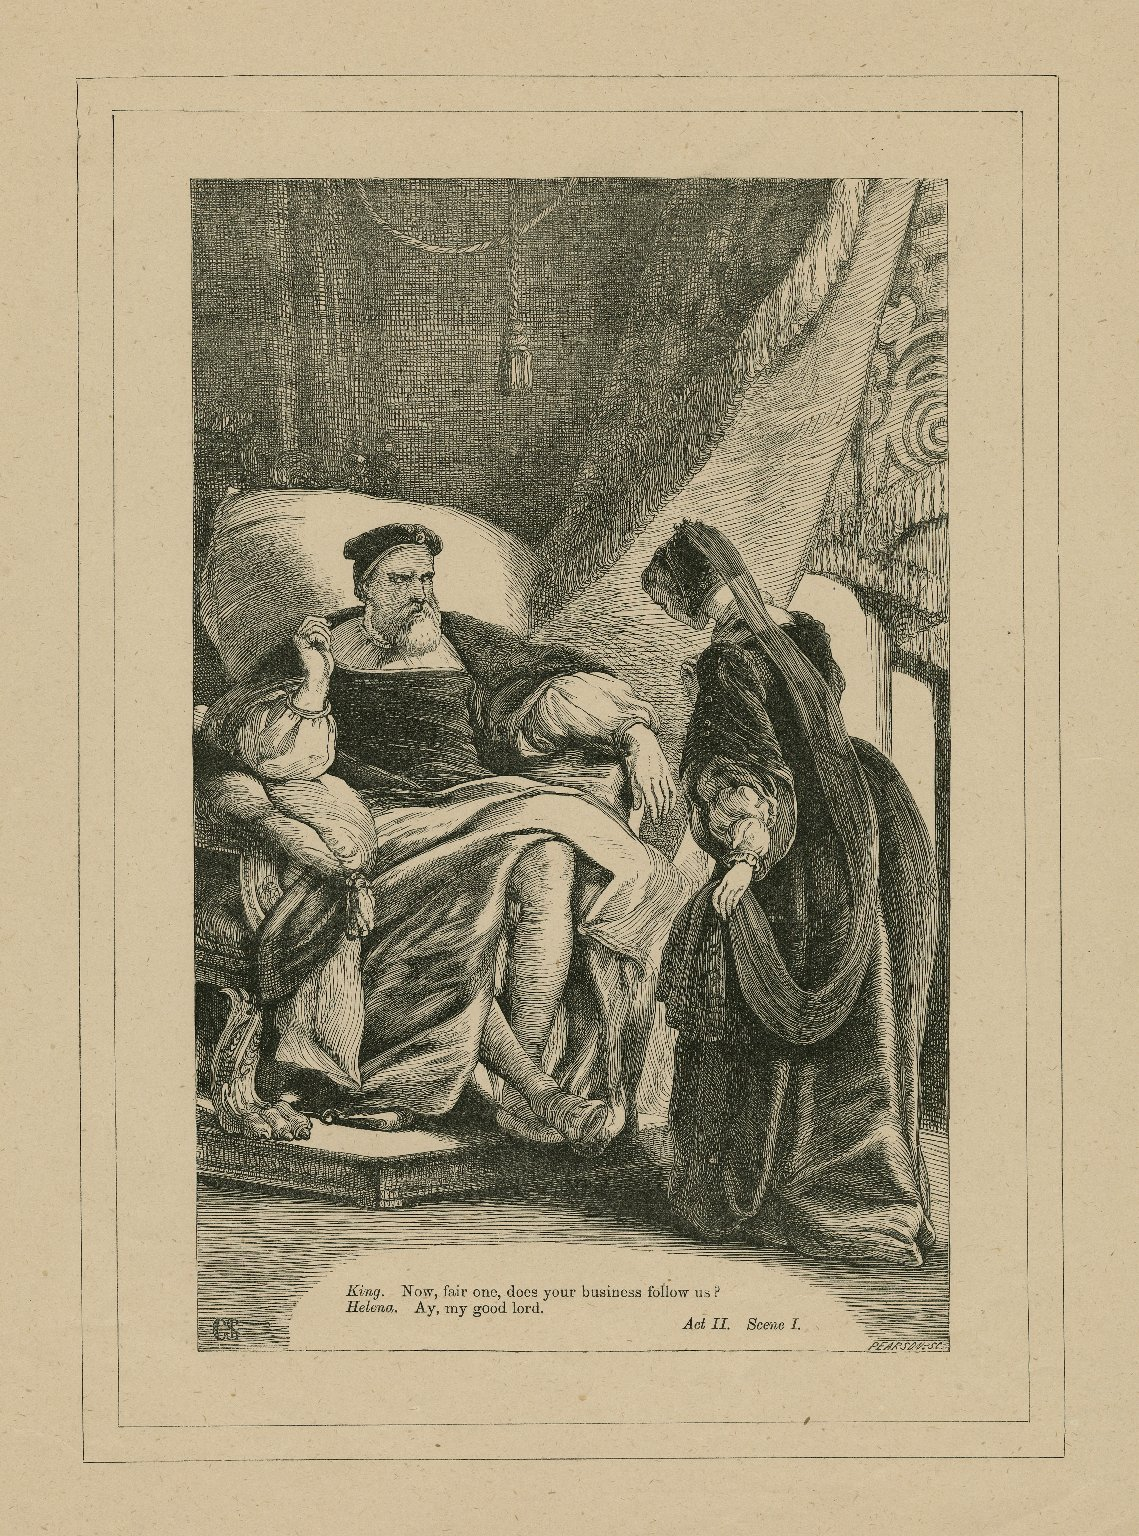 [All's well that ends well, set of engravings illustrating an edition of Shakespeare] [graphic].